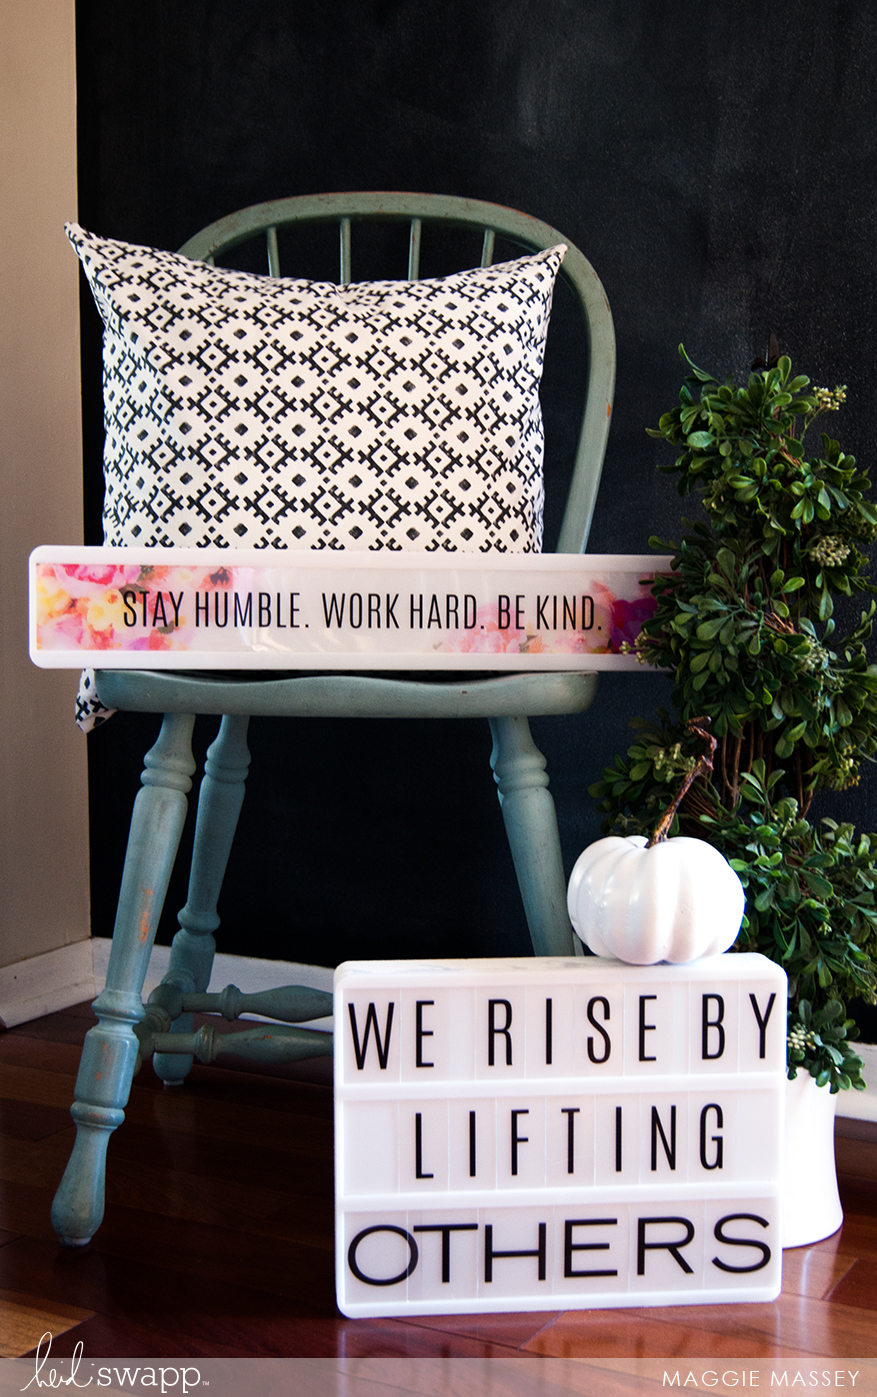 We Rise by Lifting Others lightbox by Maggie Massey for @heidiswapp